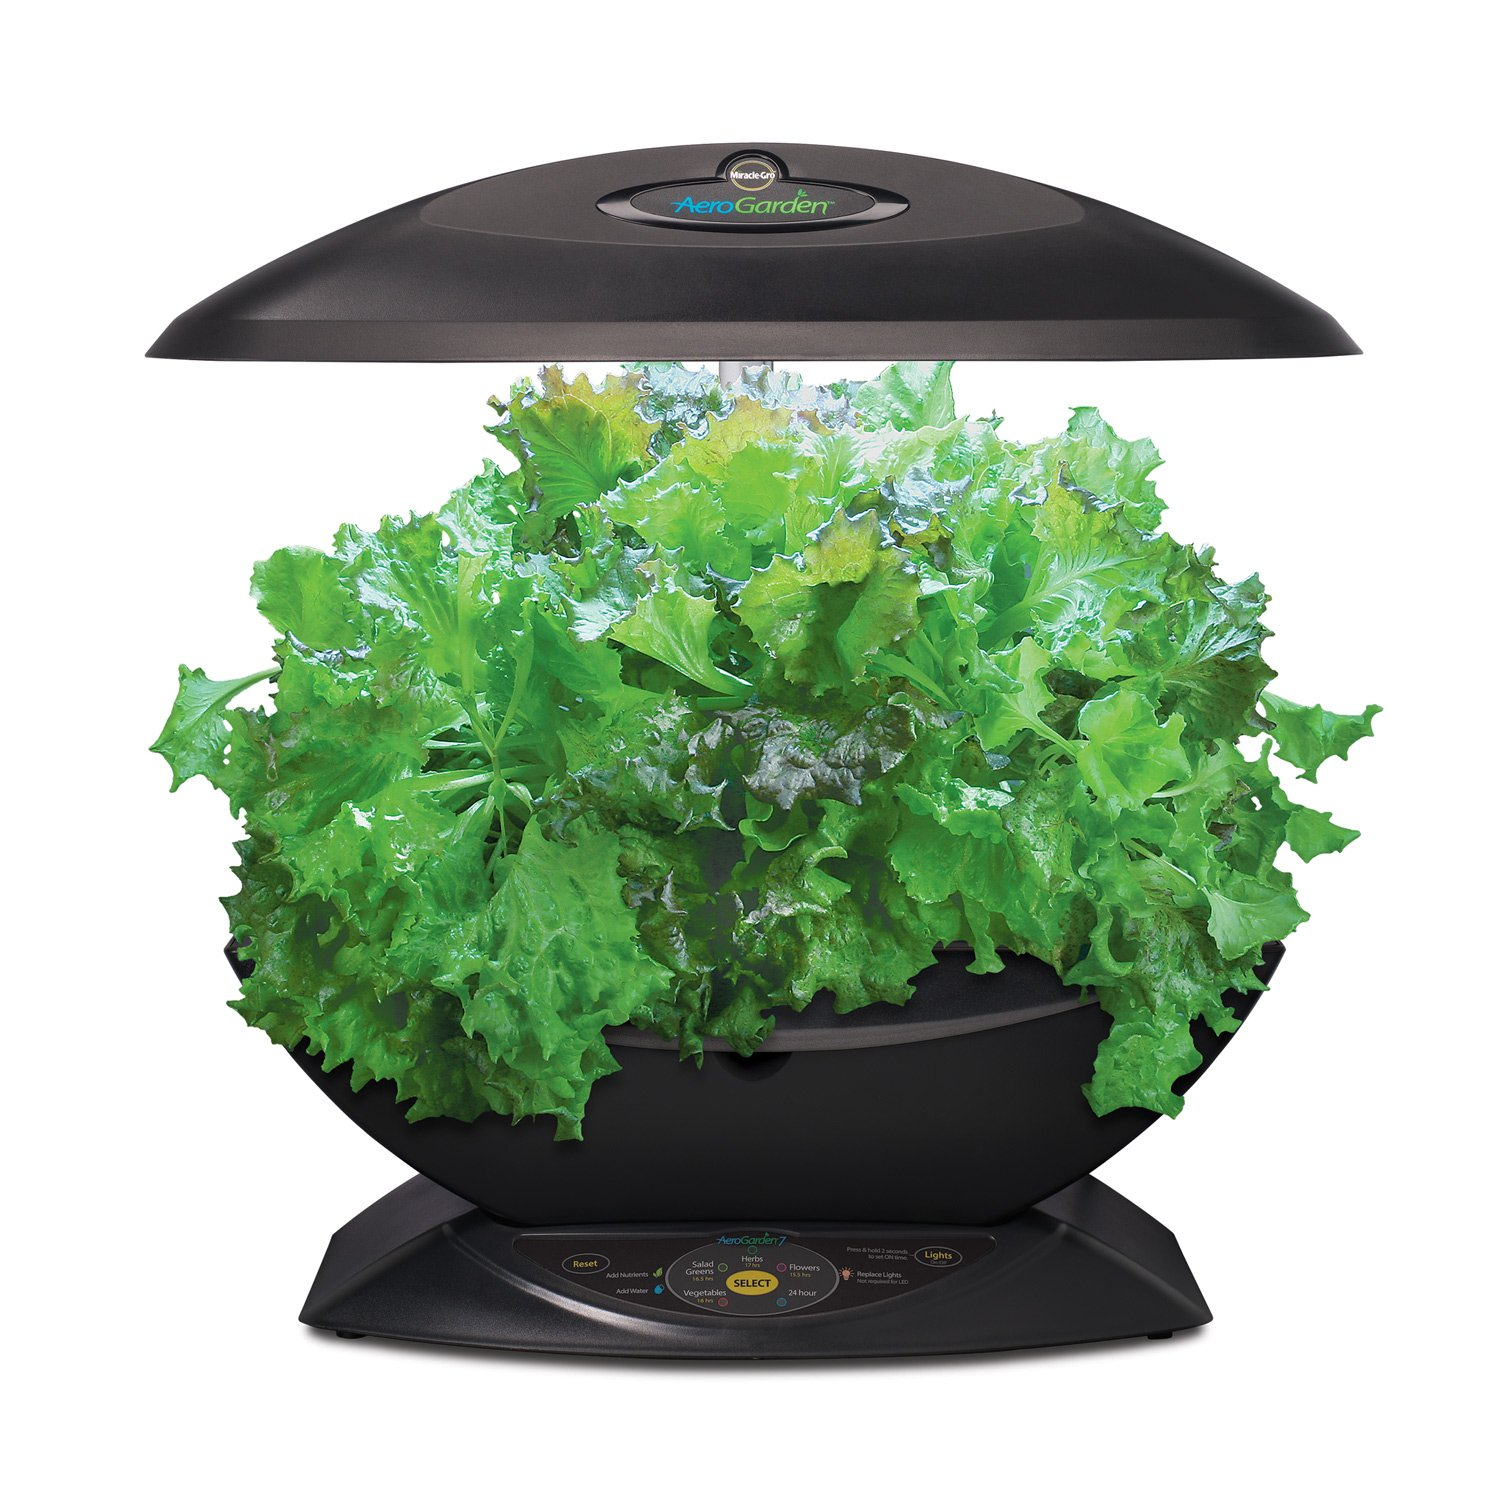 Amazon.com : AeroGarden 7 With Gourmet Herb Seed Kit : Plant Germination  Kits : Garden U0026 Outdoor